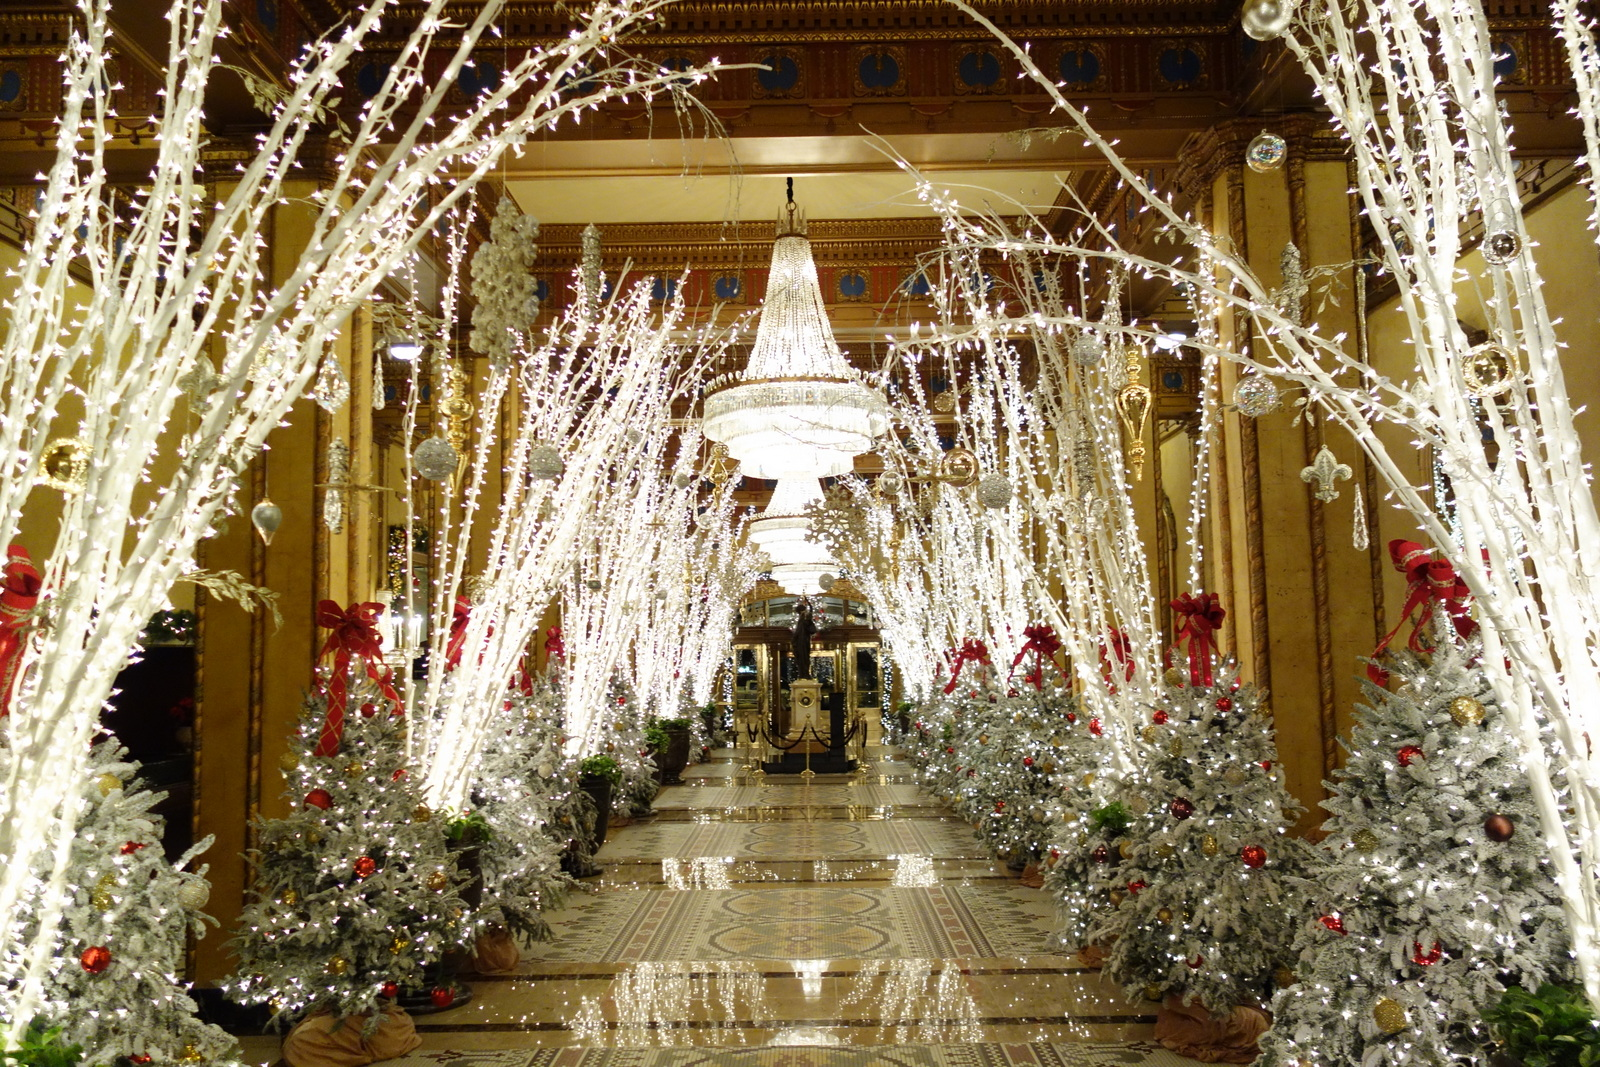 Decoration Hotel Gonola Top 5 Christmas Decorations In New Orleans